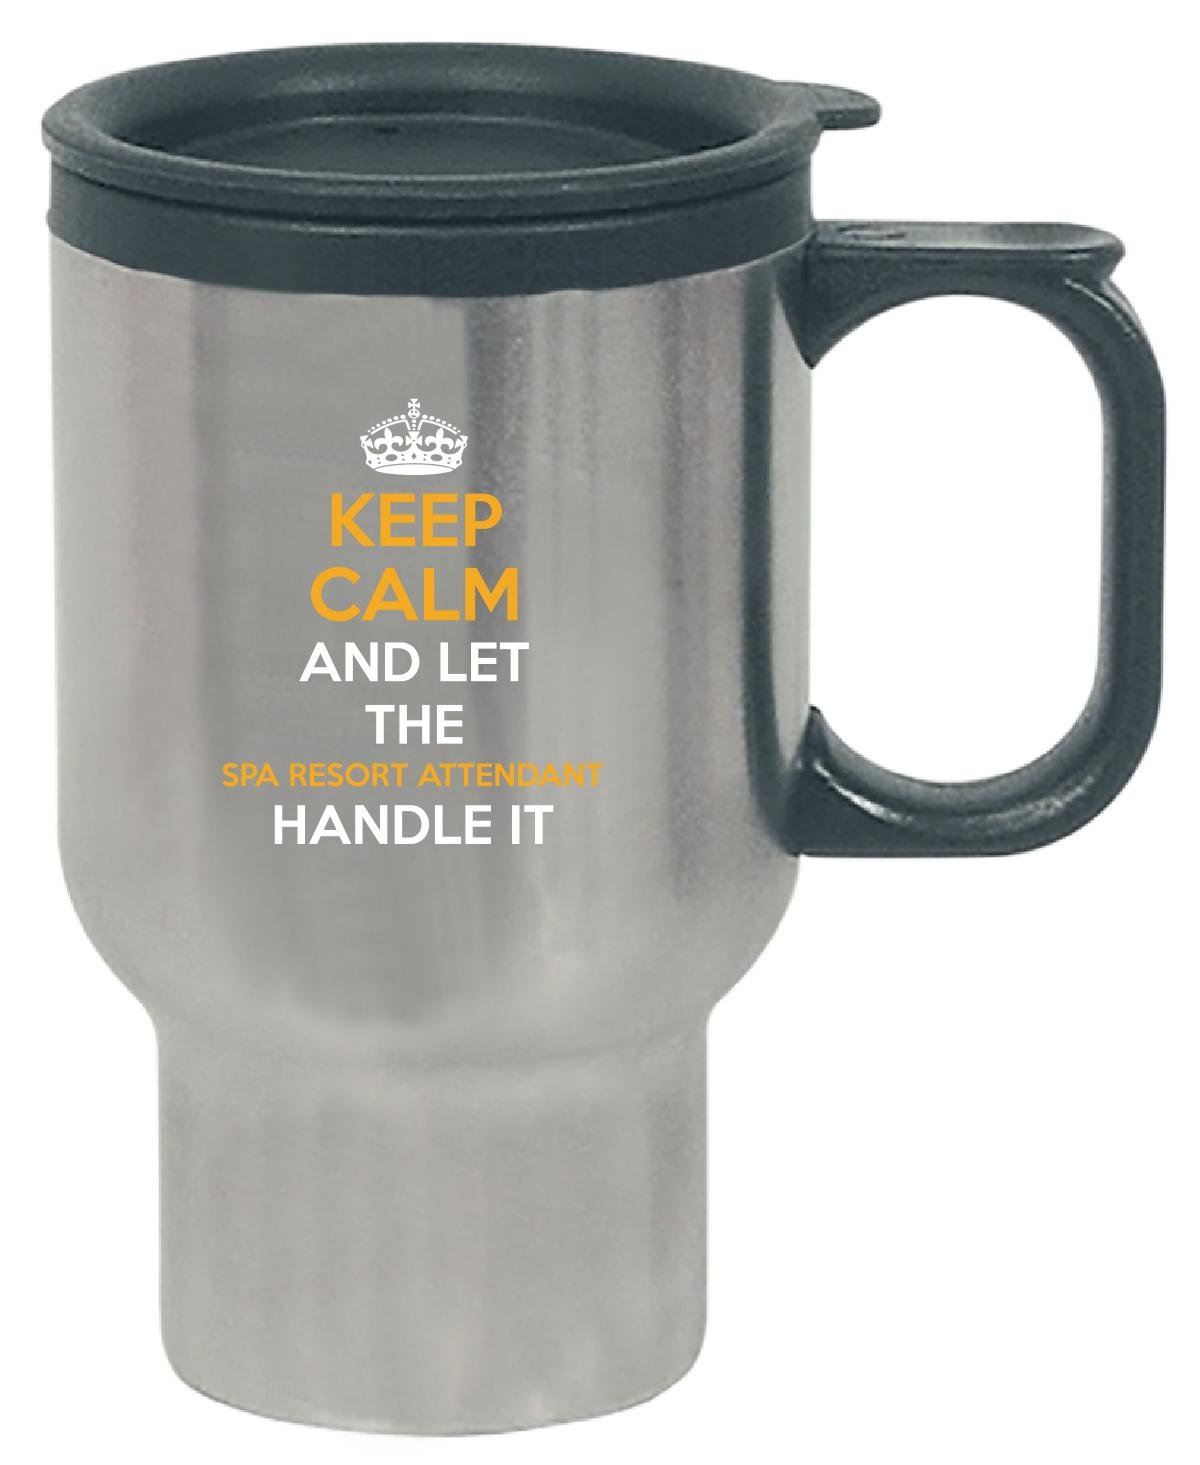 Keep Calm And Let The Spa Resort Attendant Handle It - Travel Mug by Inked Creatively (Image #1)